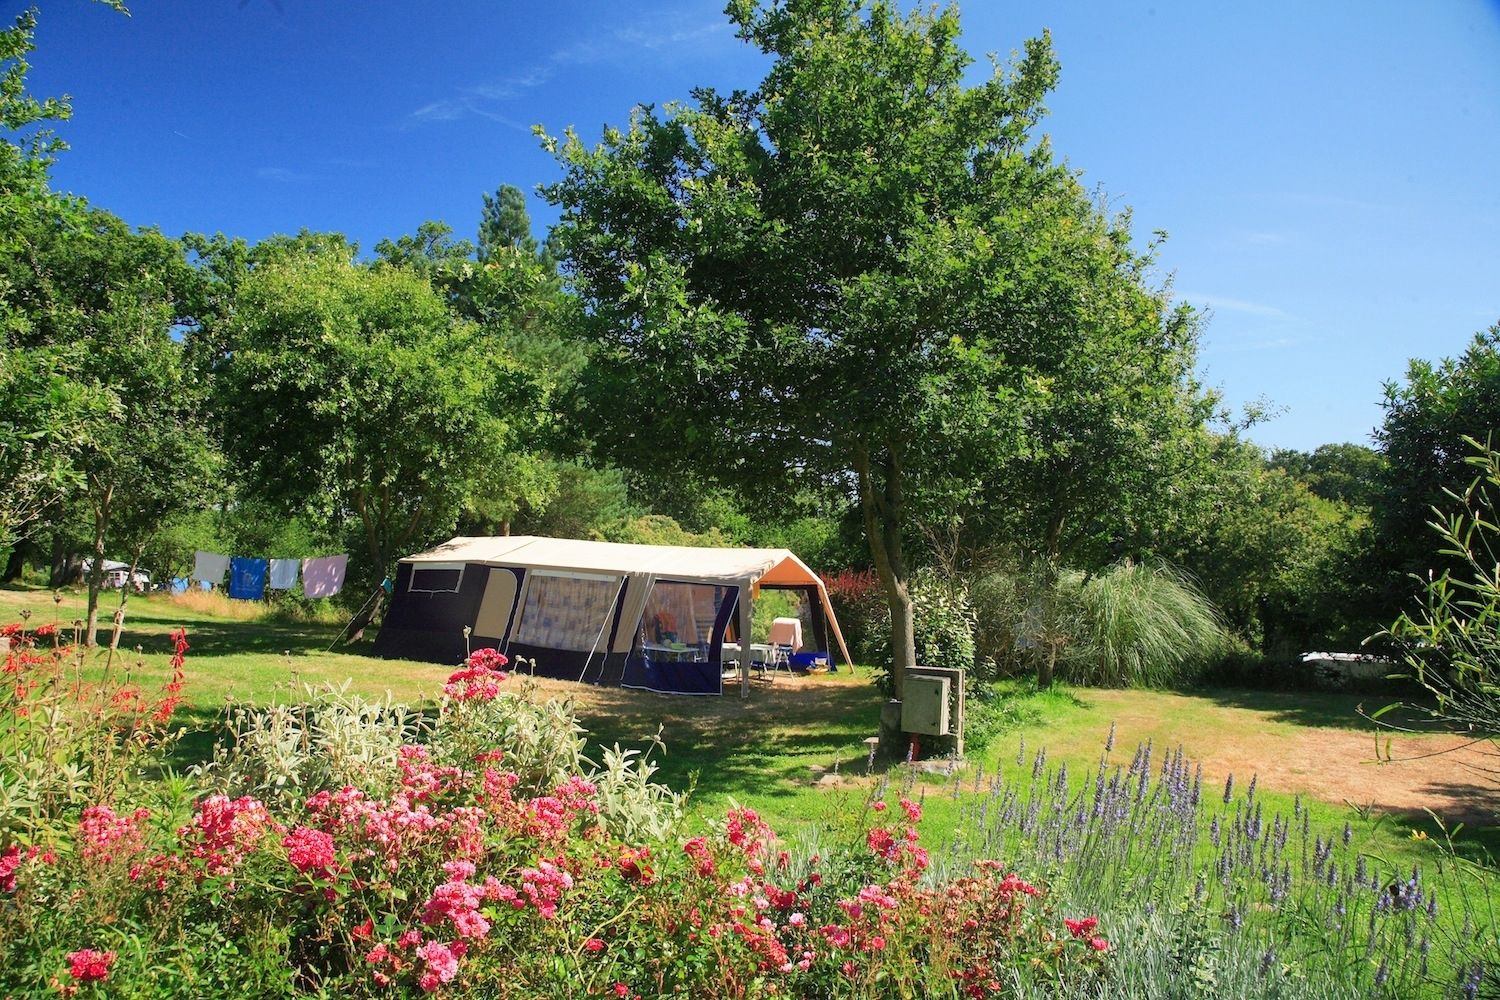 Campsites in Brittany & Normandy – The Best Camping Sites in North West France